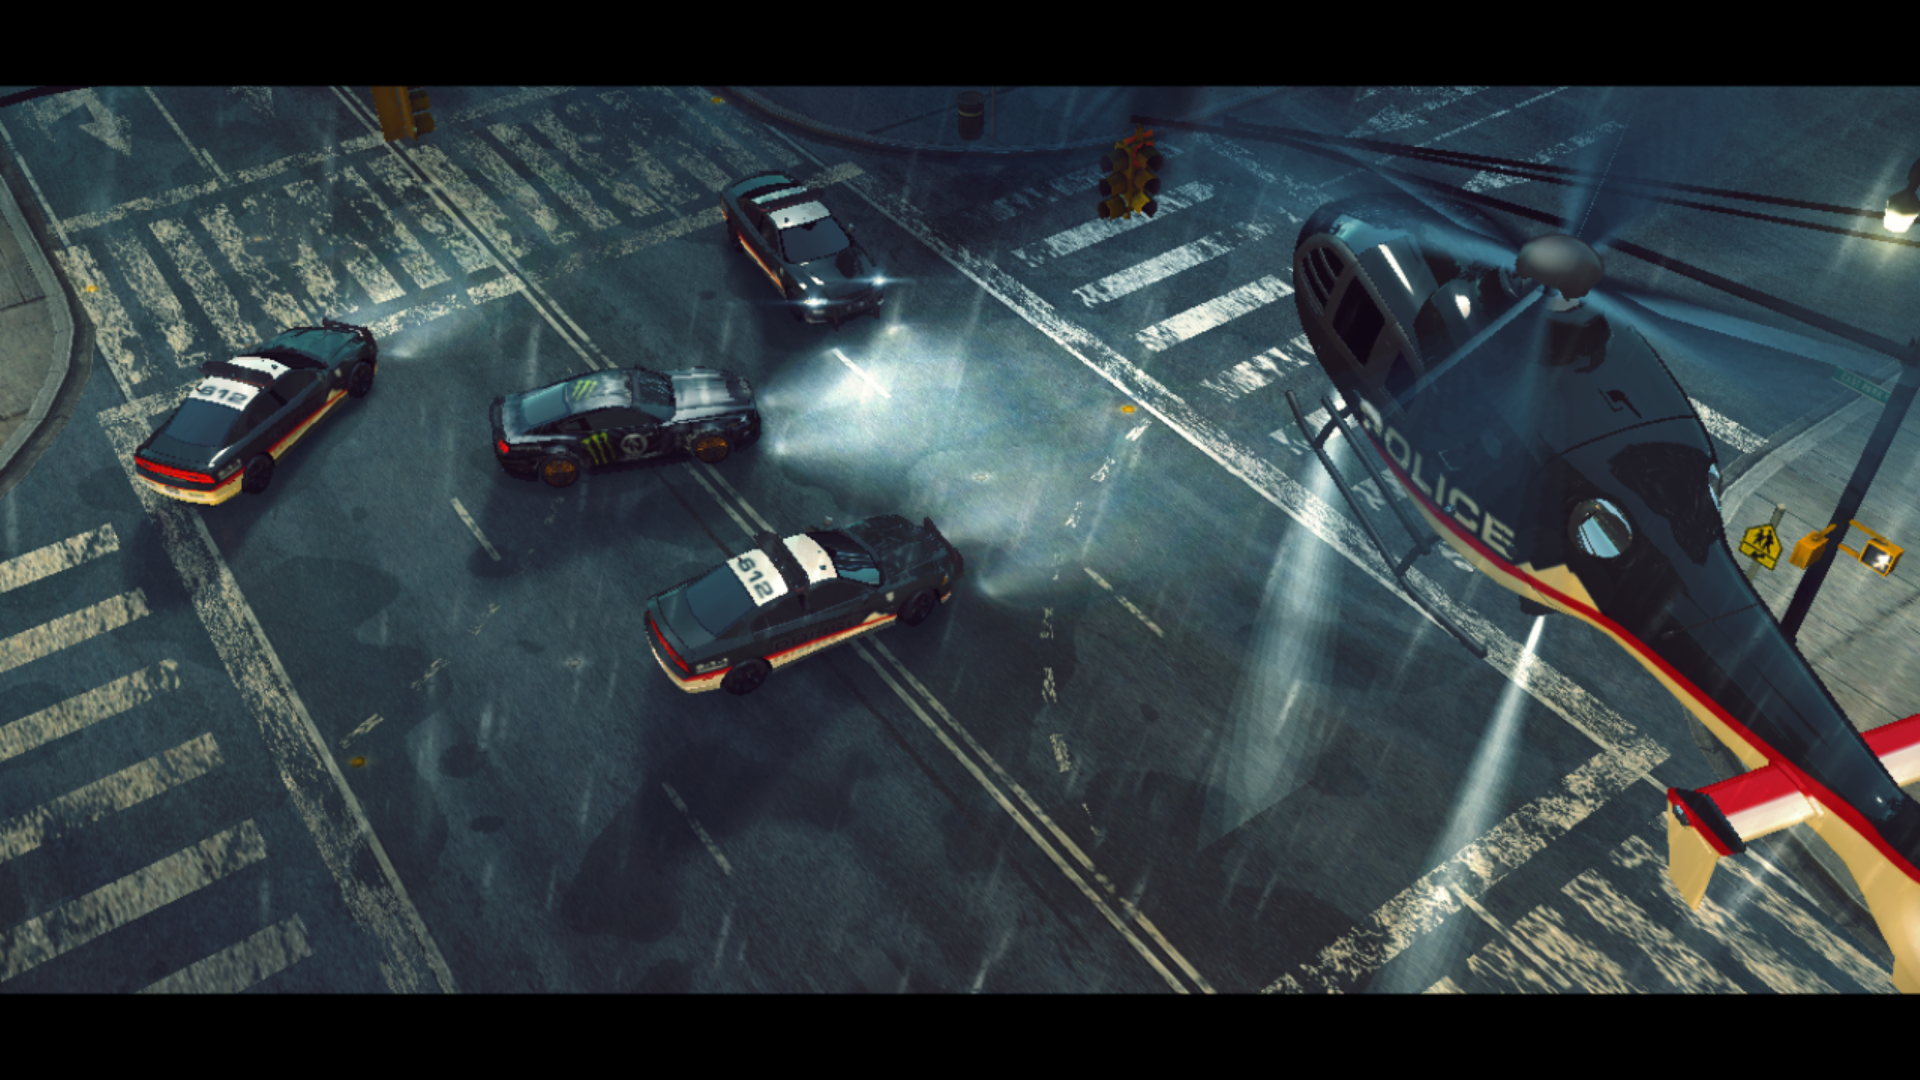 Need For Speed: No Limits Speeds Into The Play Store Like It's